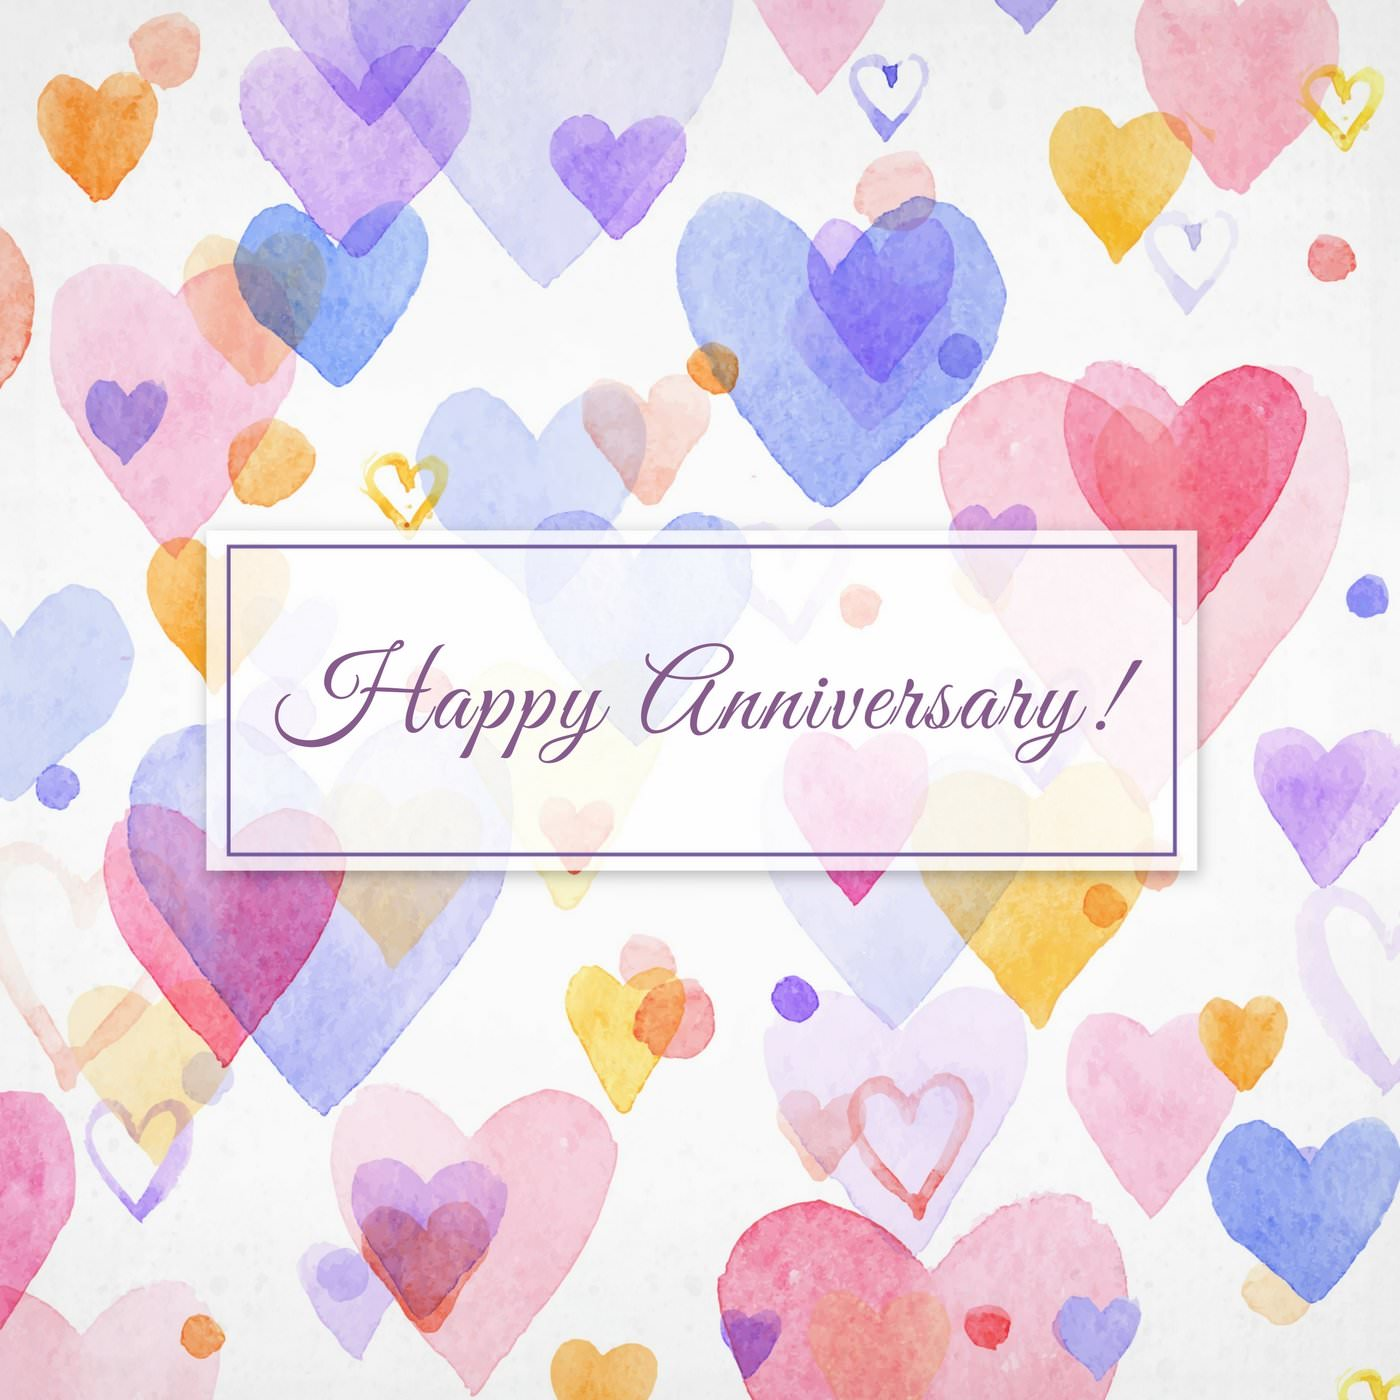 Happy Anniversary wish on image with colored hearts